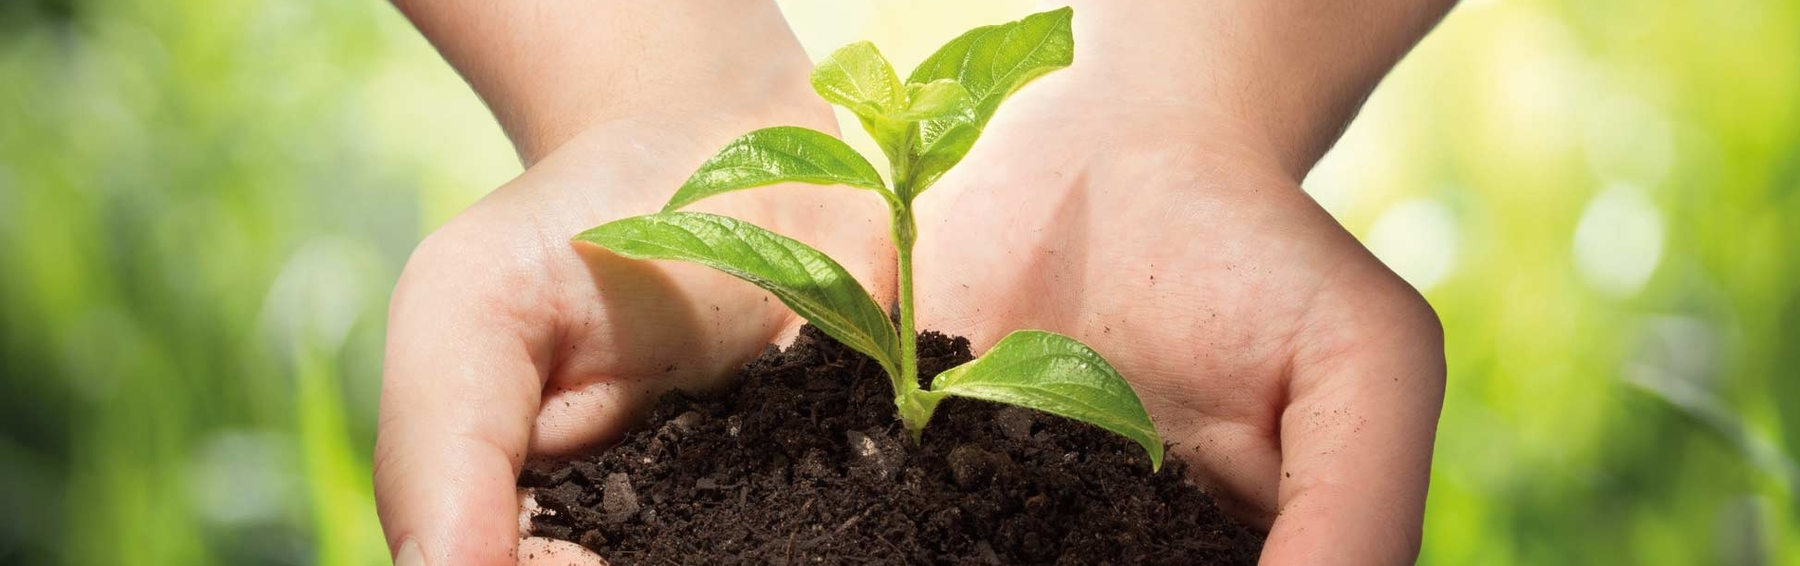 Plant seedling in the hand